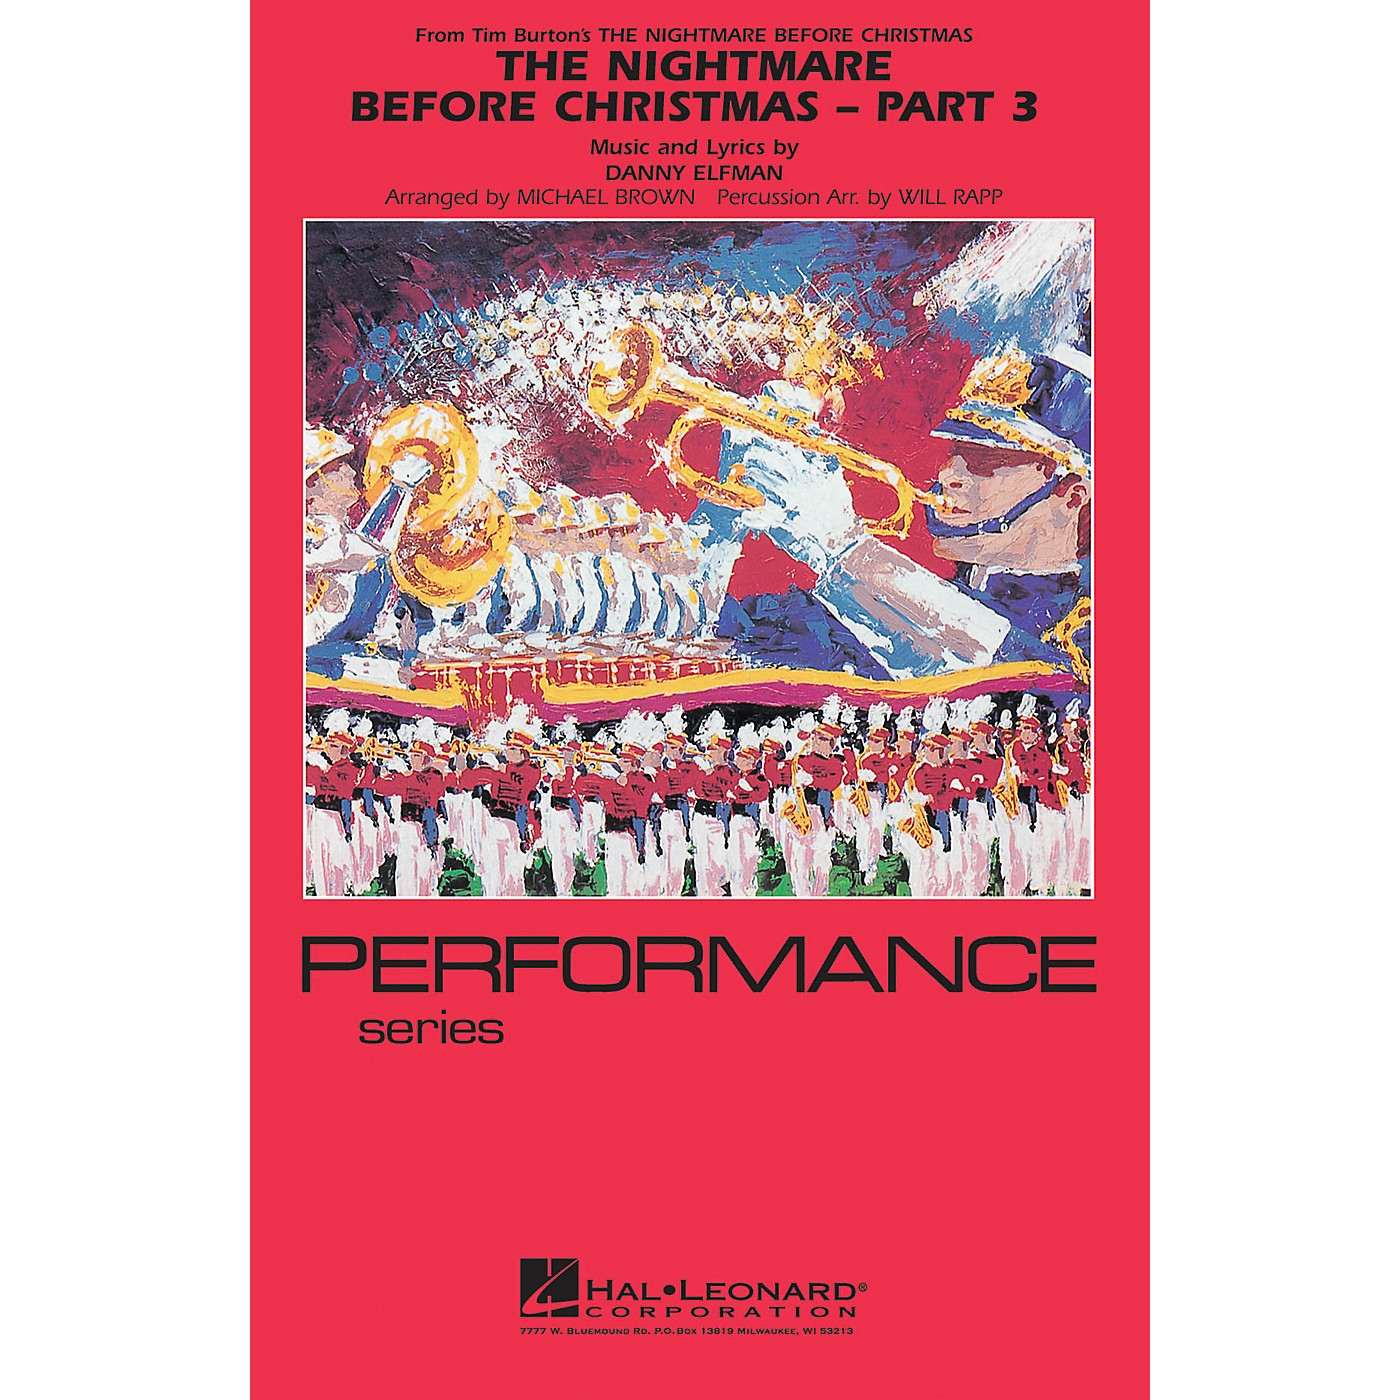 Hal Leonard The Nightmare Before Christmas - Part 3 Marching Band Level 4 Arranged by Will Rapp thumbnail